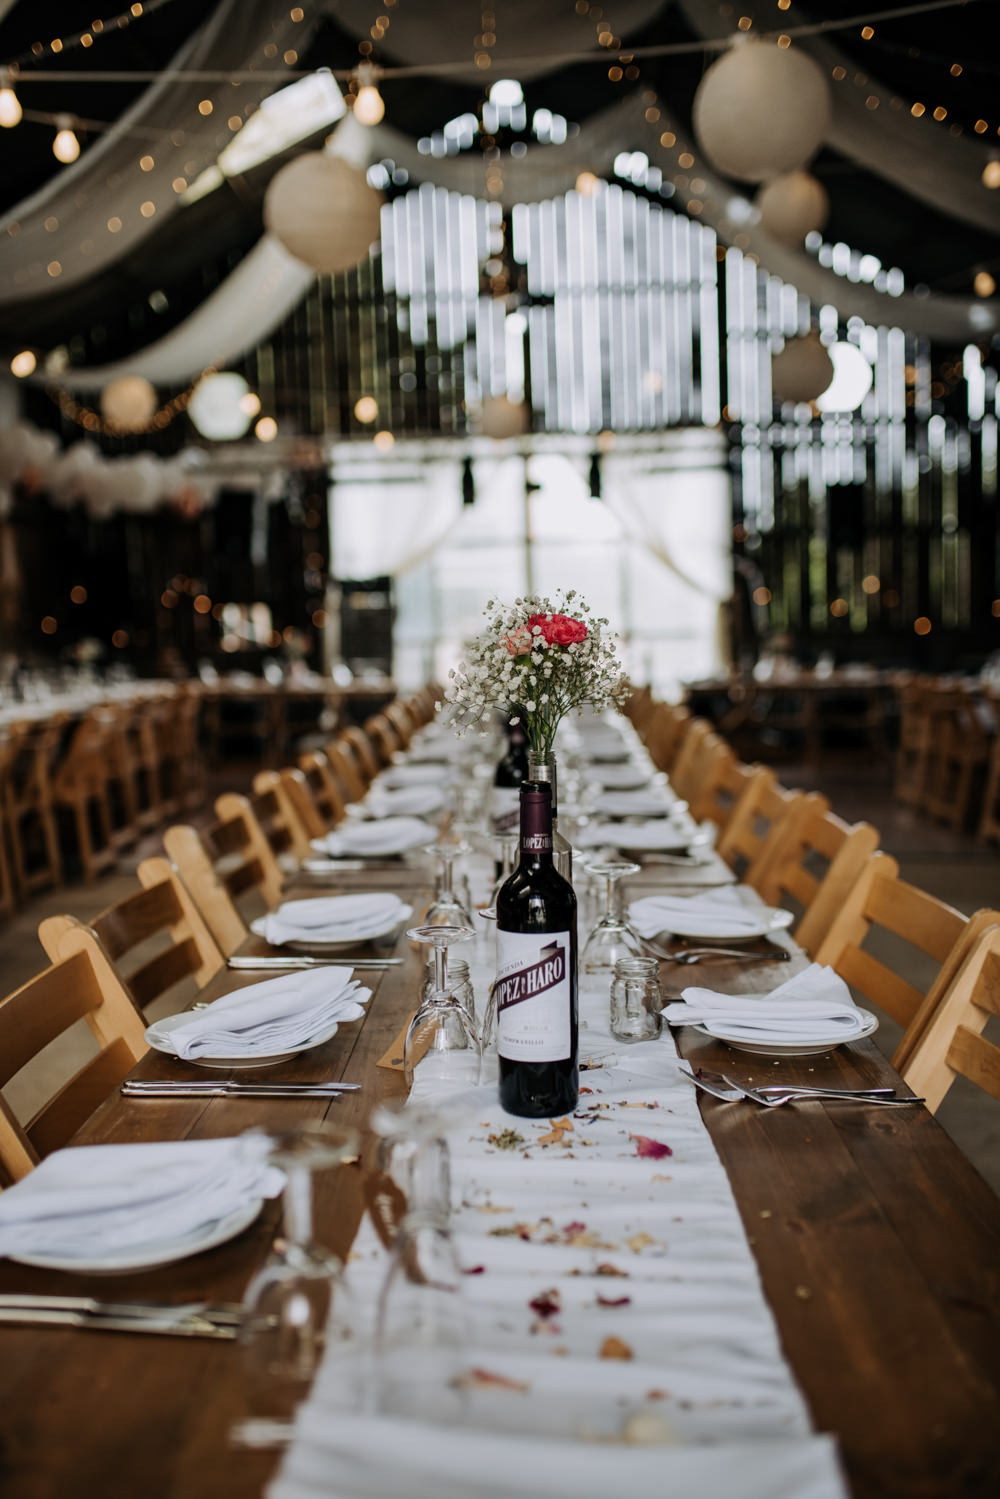 Long Tables Barn Lanterns Decor Decoration Bottle Flowers Petals Deepdale Farm Wedding Kazooieloki Photography